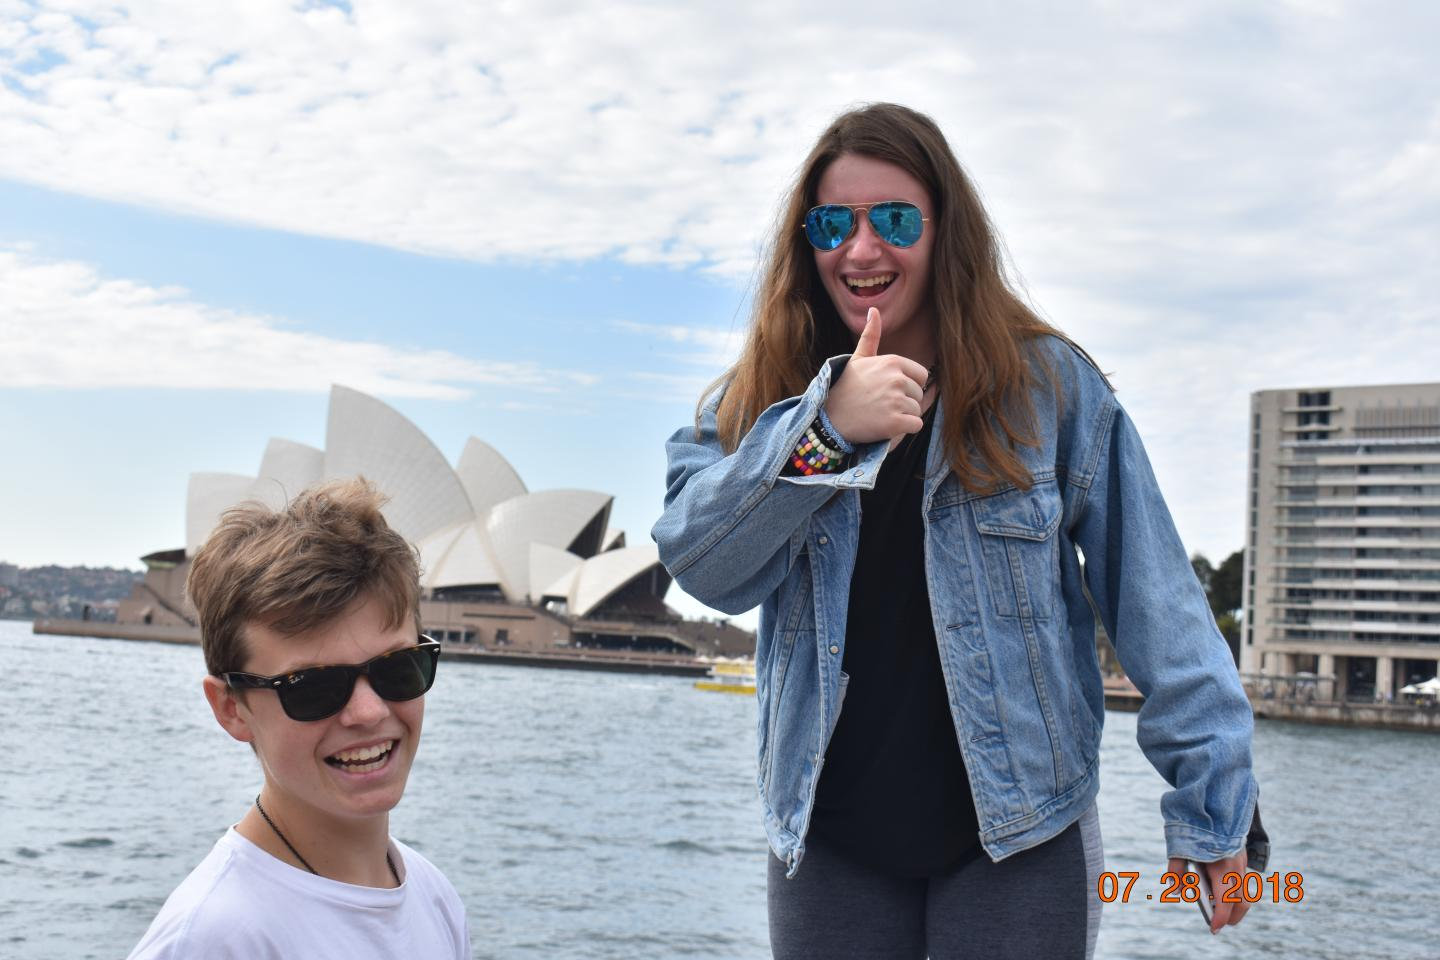 High school travelers hang out at the Sydney Opera House on their summer teen tour to Australia.